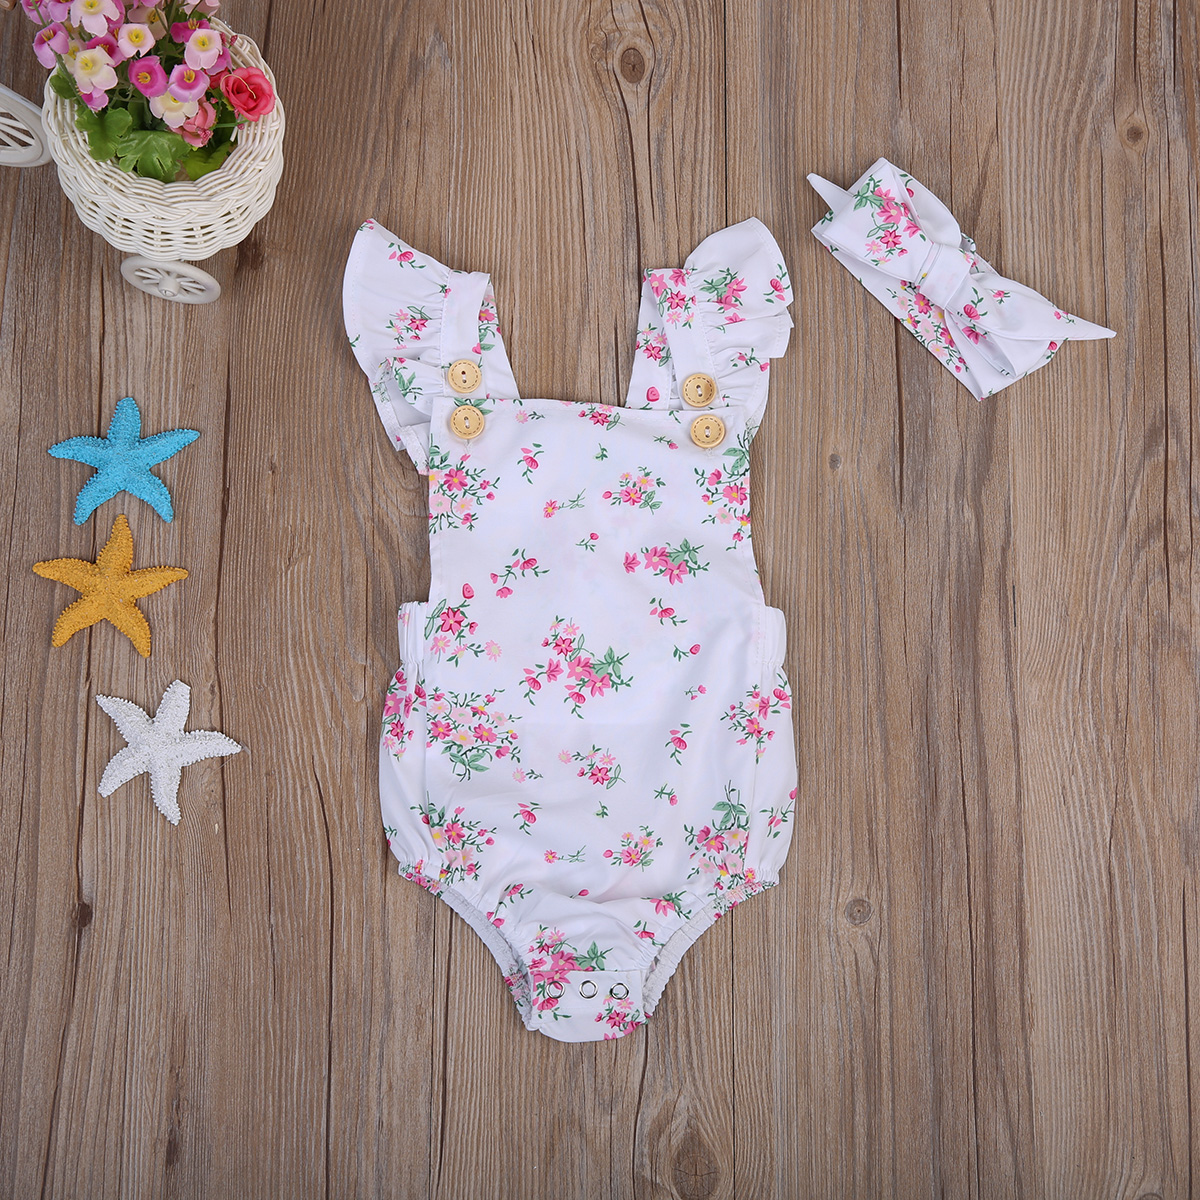 Nice White Small Flower Newborn Toddler Infant Baby Girl   Romper   Jumpsuit Outfit Sunsuit